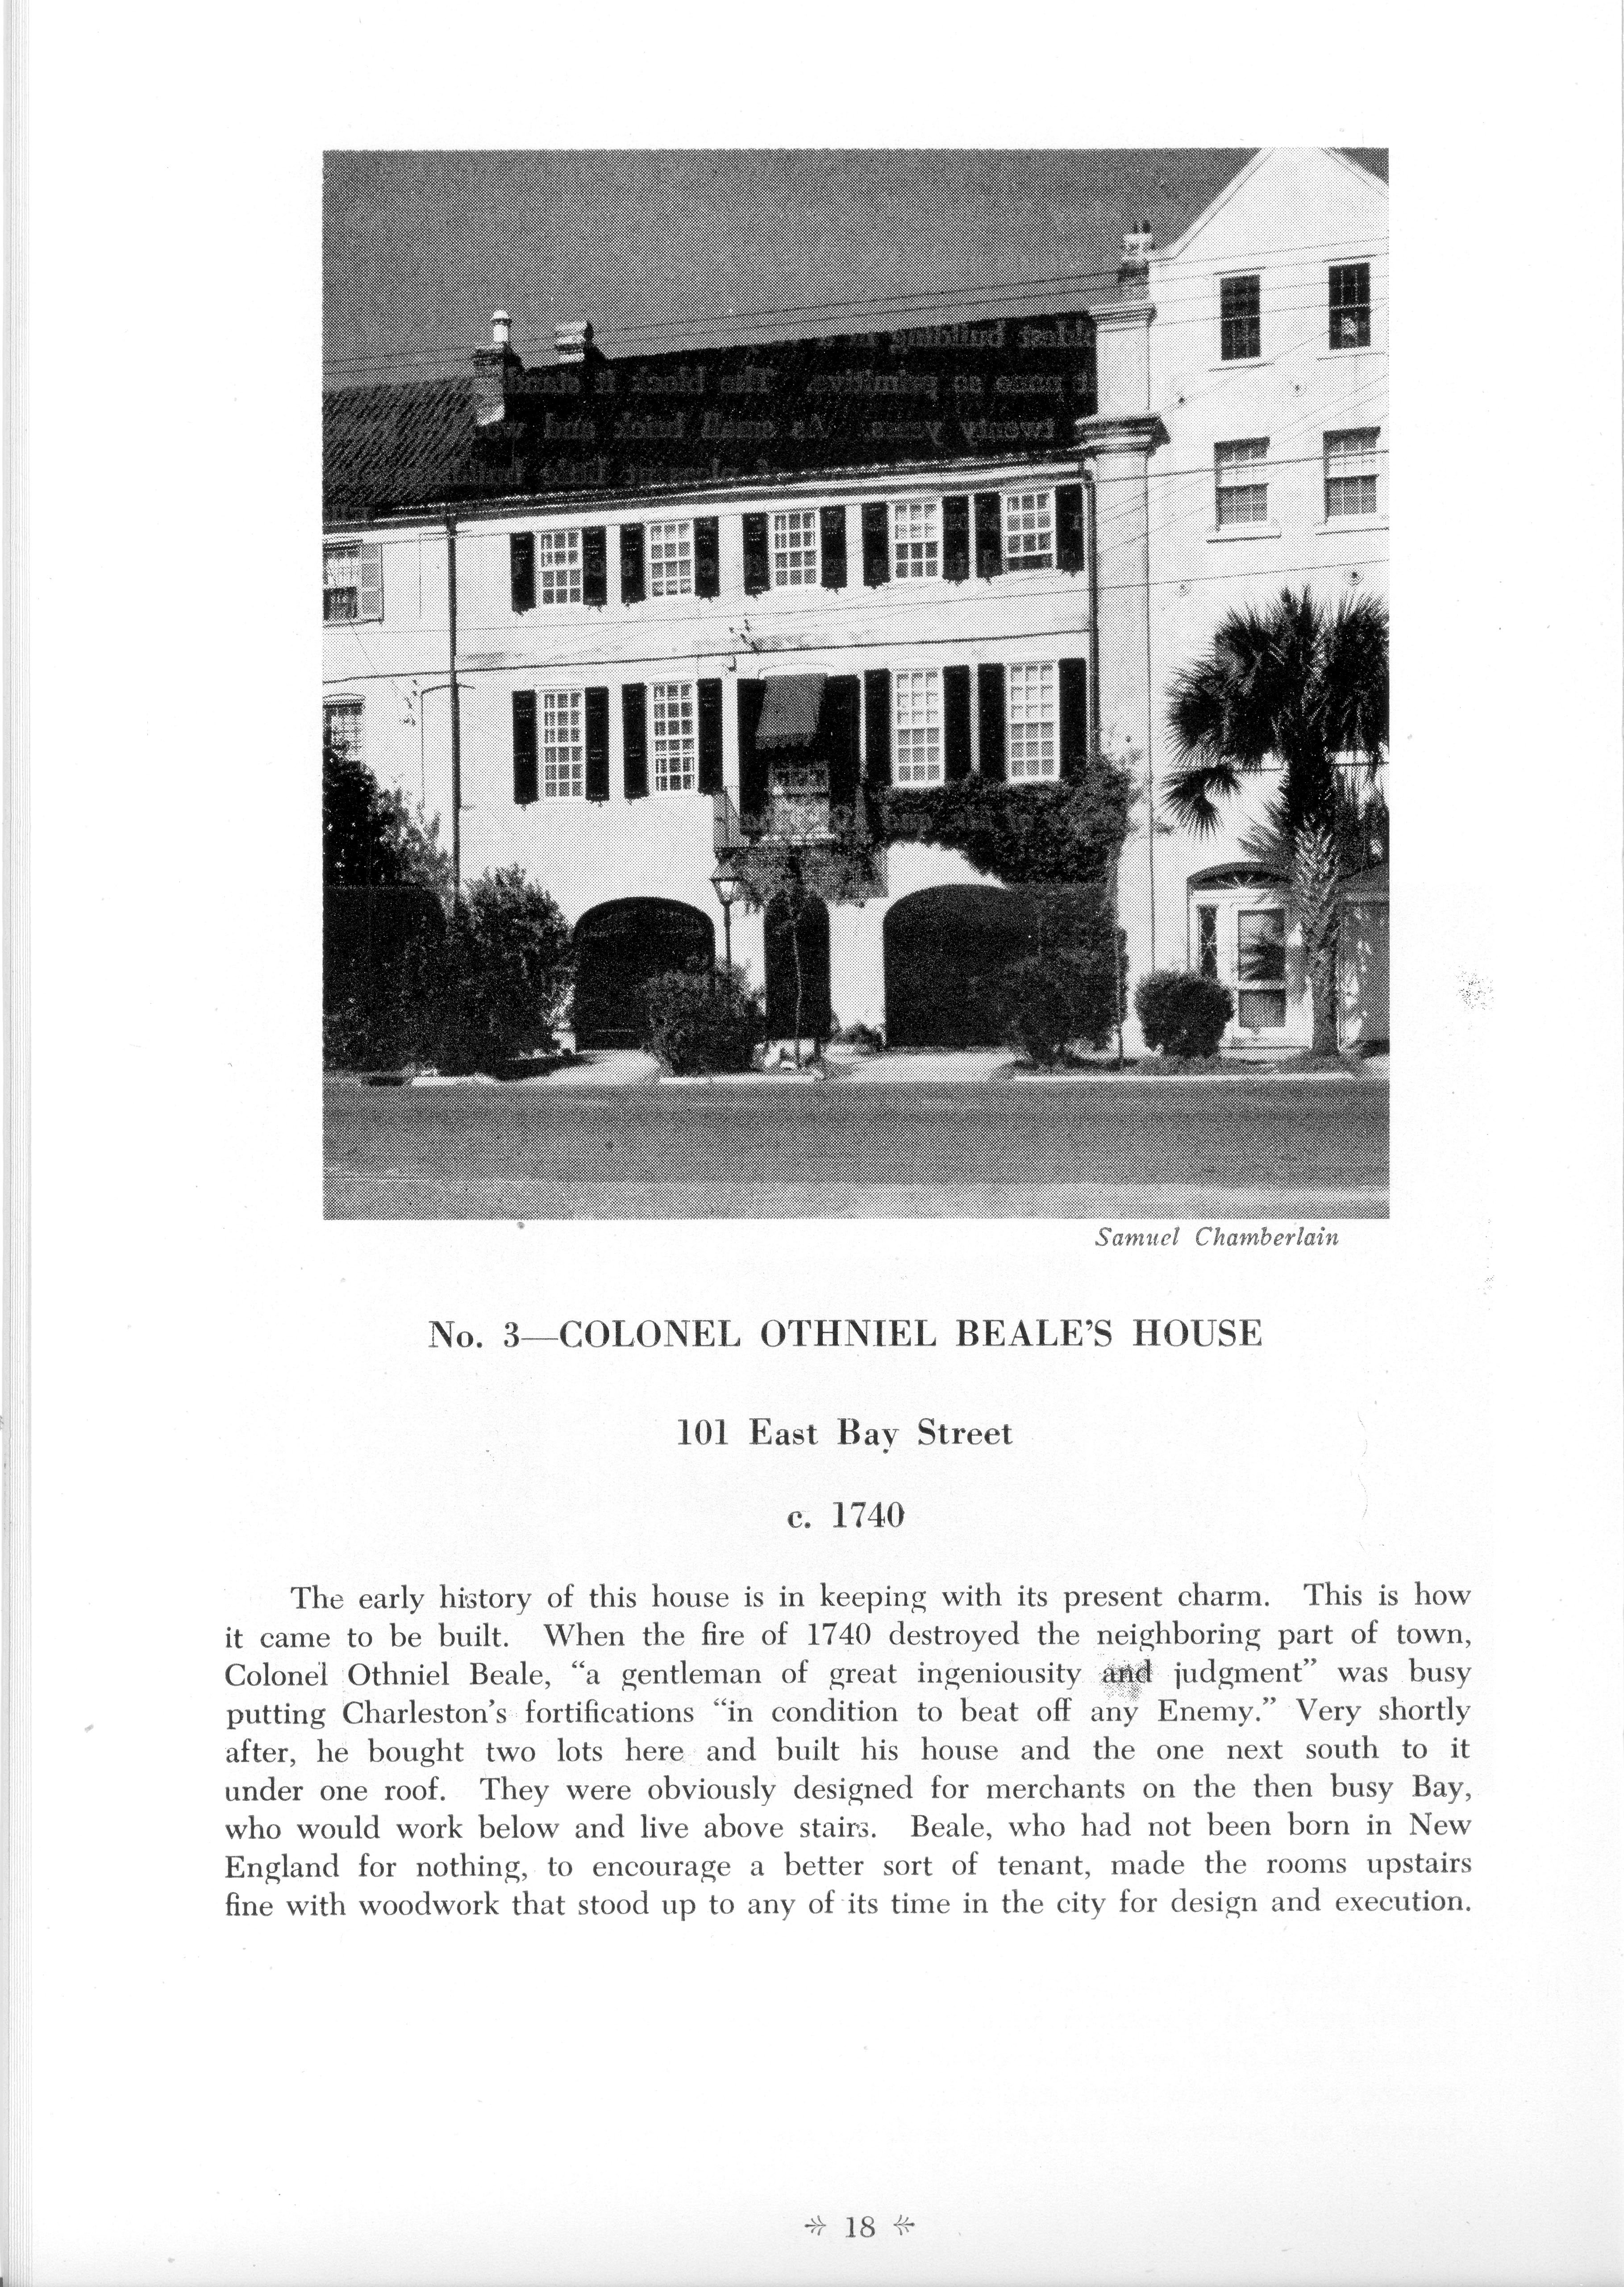 Page 18:  No. 3 - Colonel Othniel Beale's House, 101 East Bay Street, c. 1740